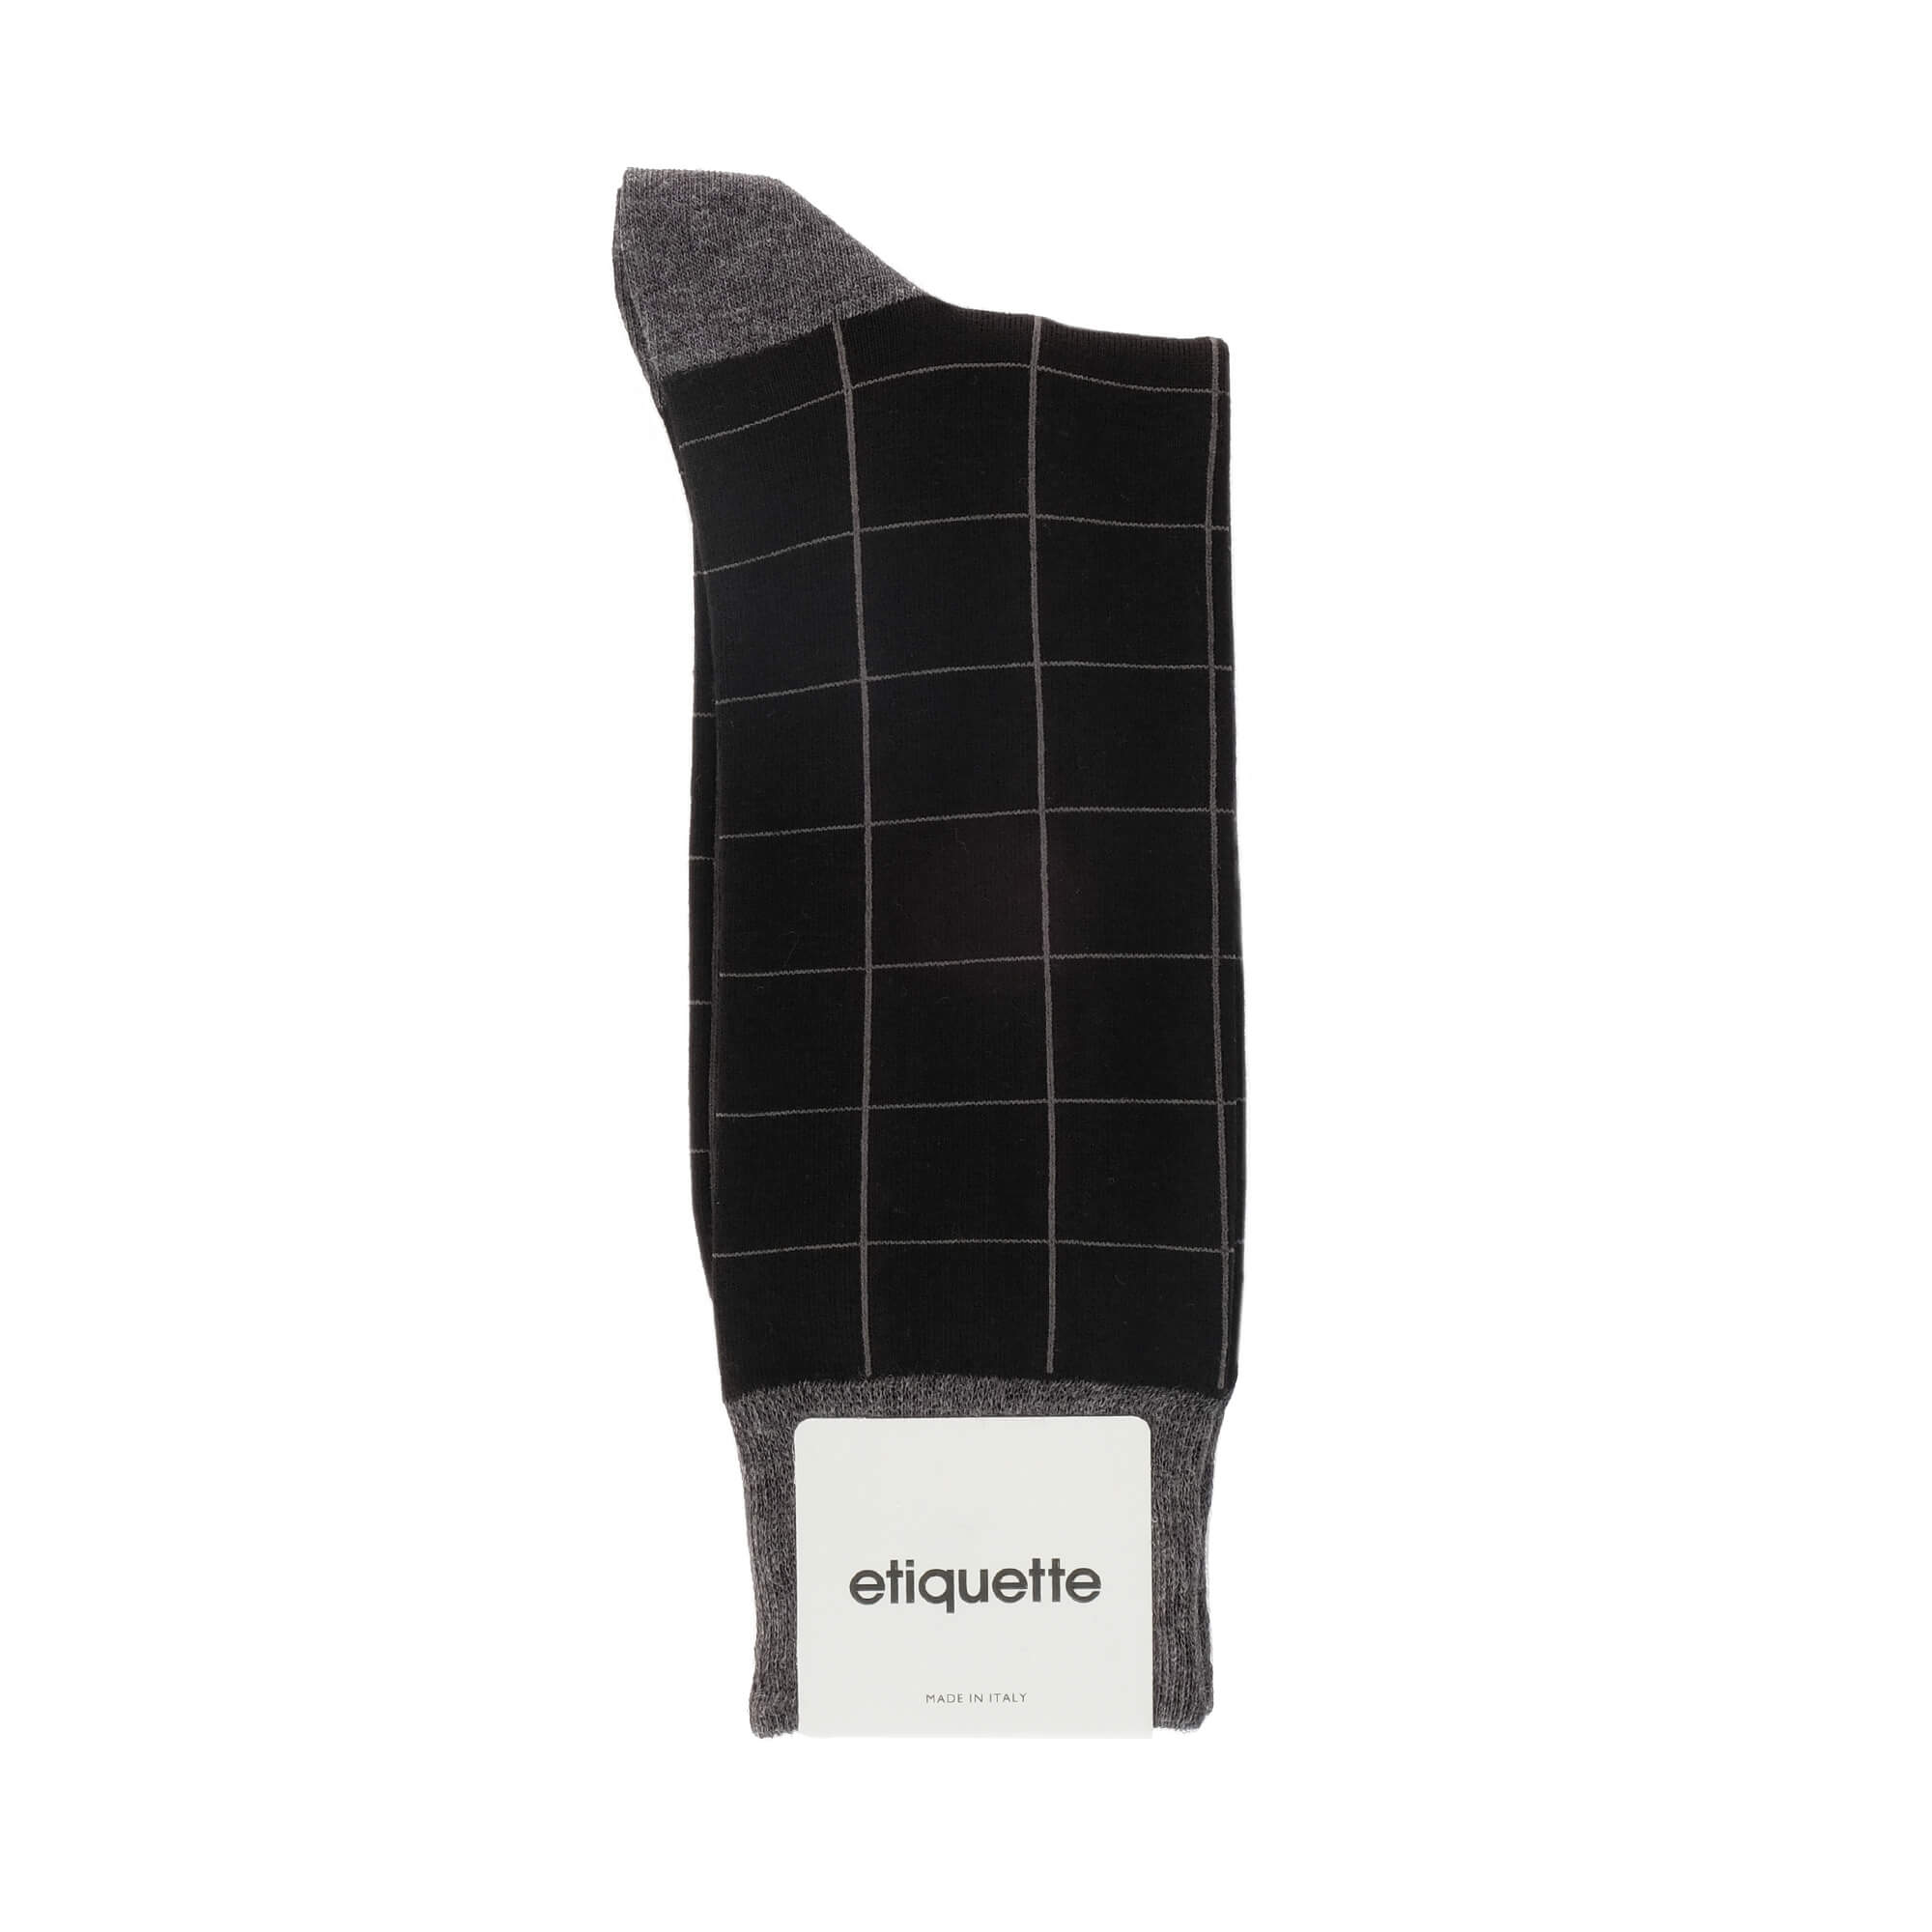 Mens Socks - Windowpane Men's Socks - Black⎪Etiquette Clothiers